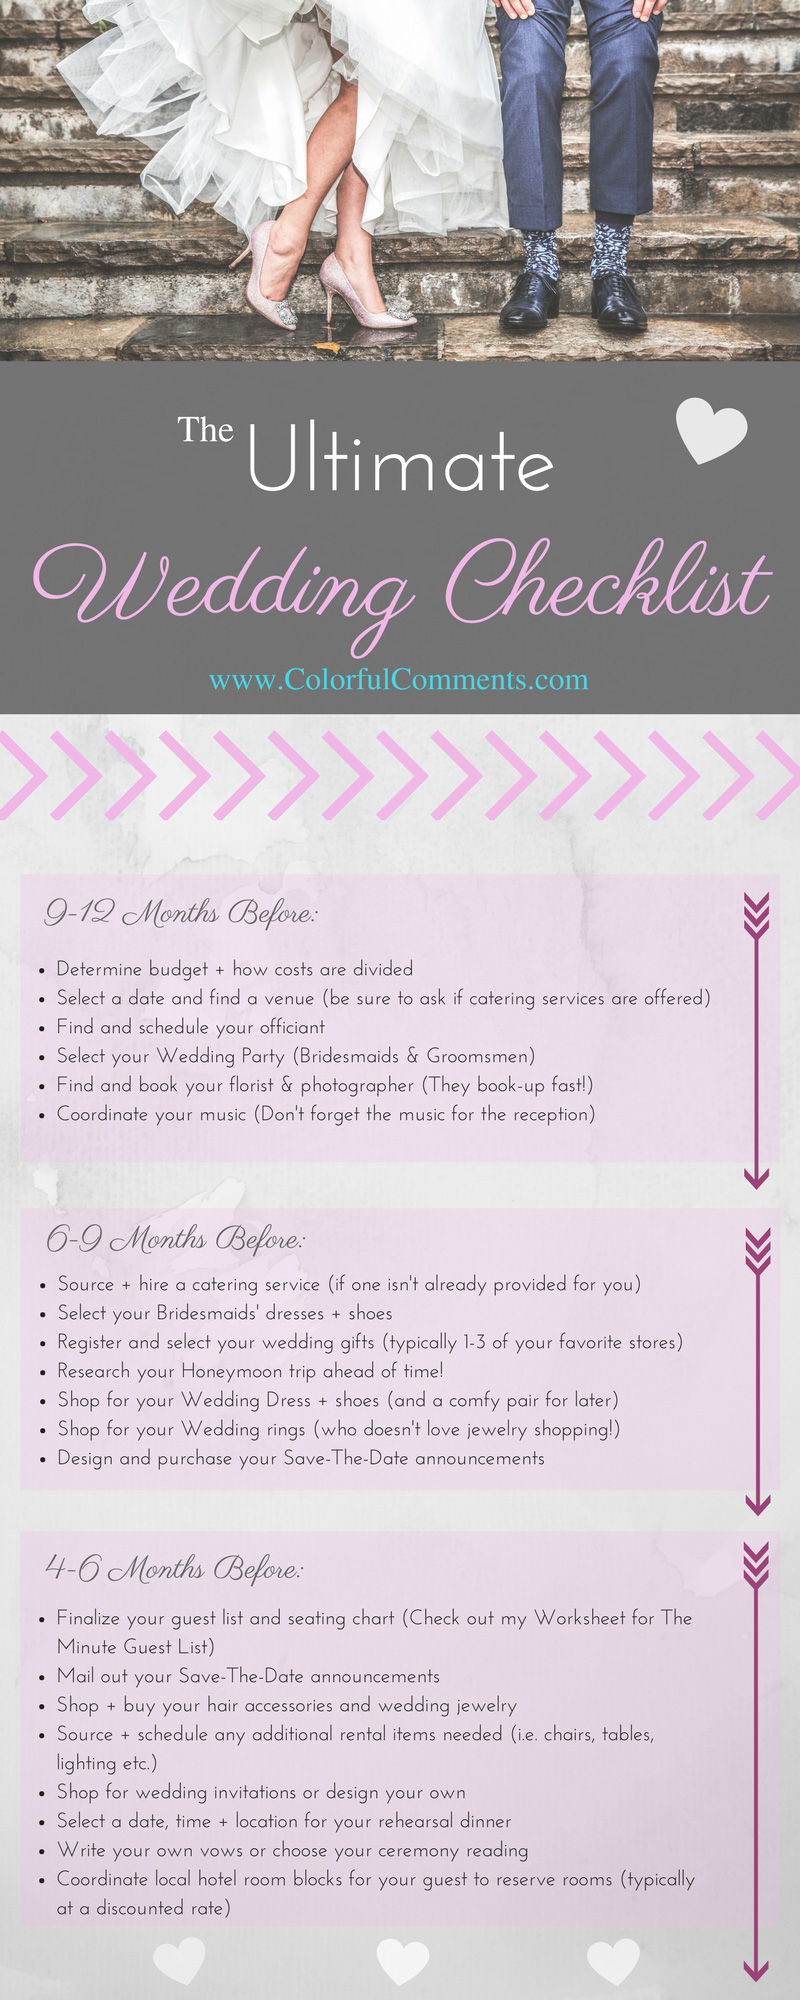 The Ultimate Wedding Checklist-PG1-071717_edited2.jpg